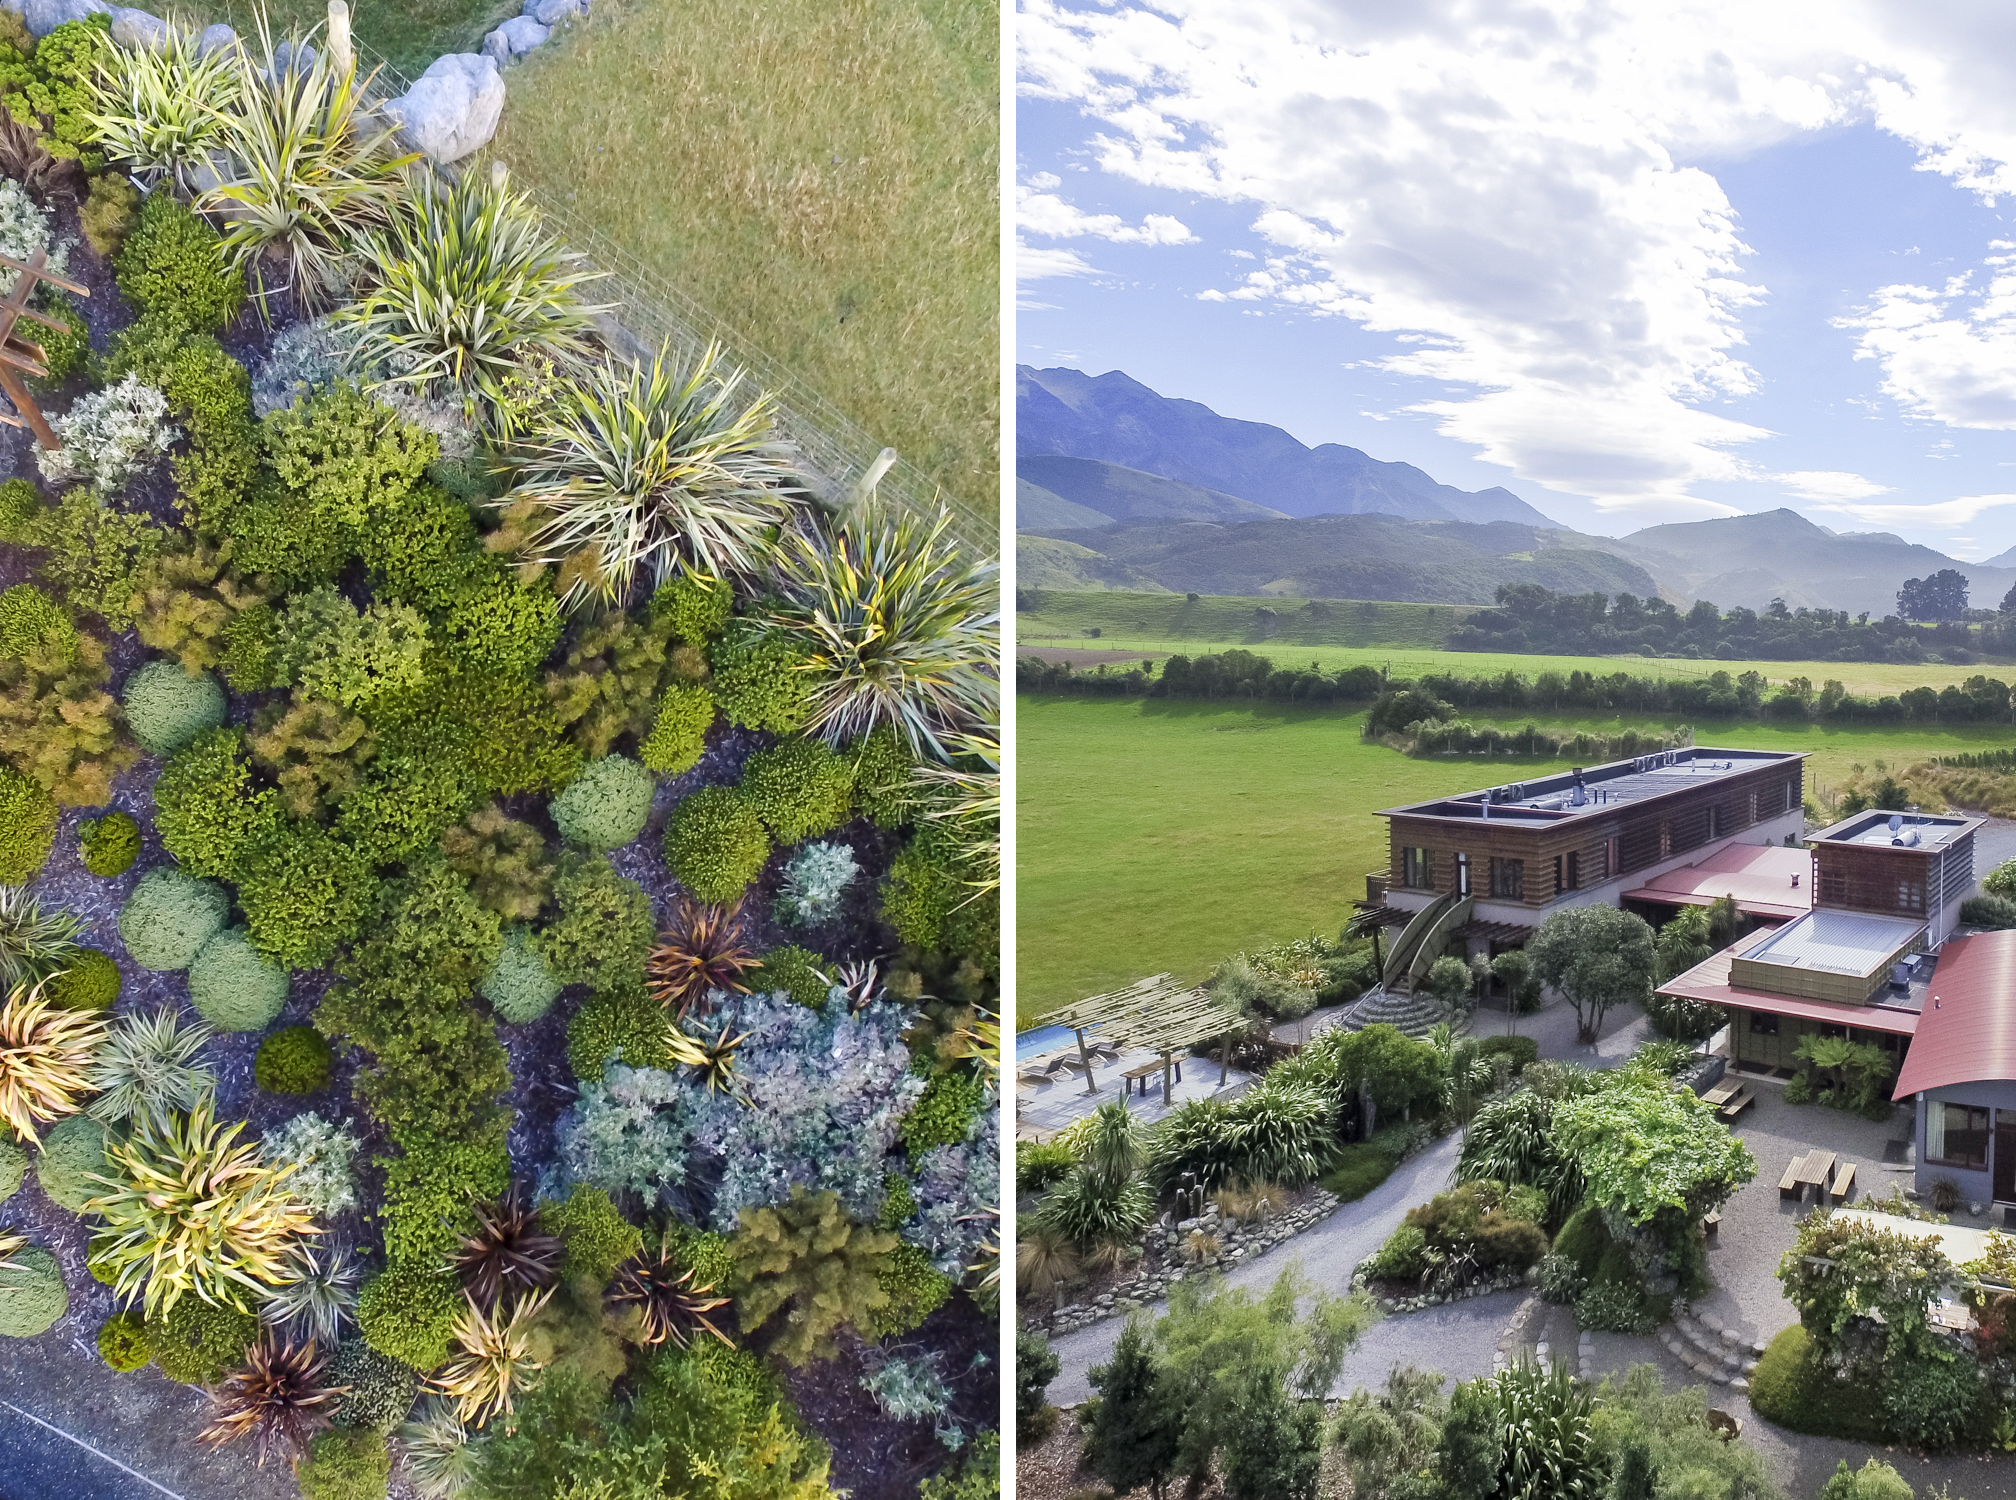 Thousands of NZ native plants and trees have planted throughout the property.